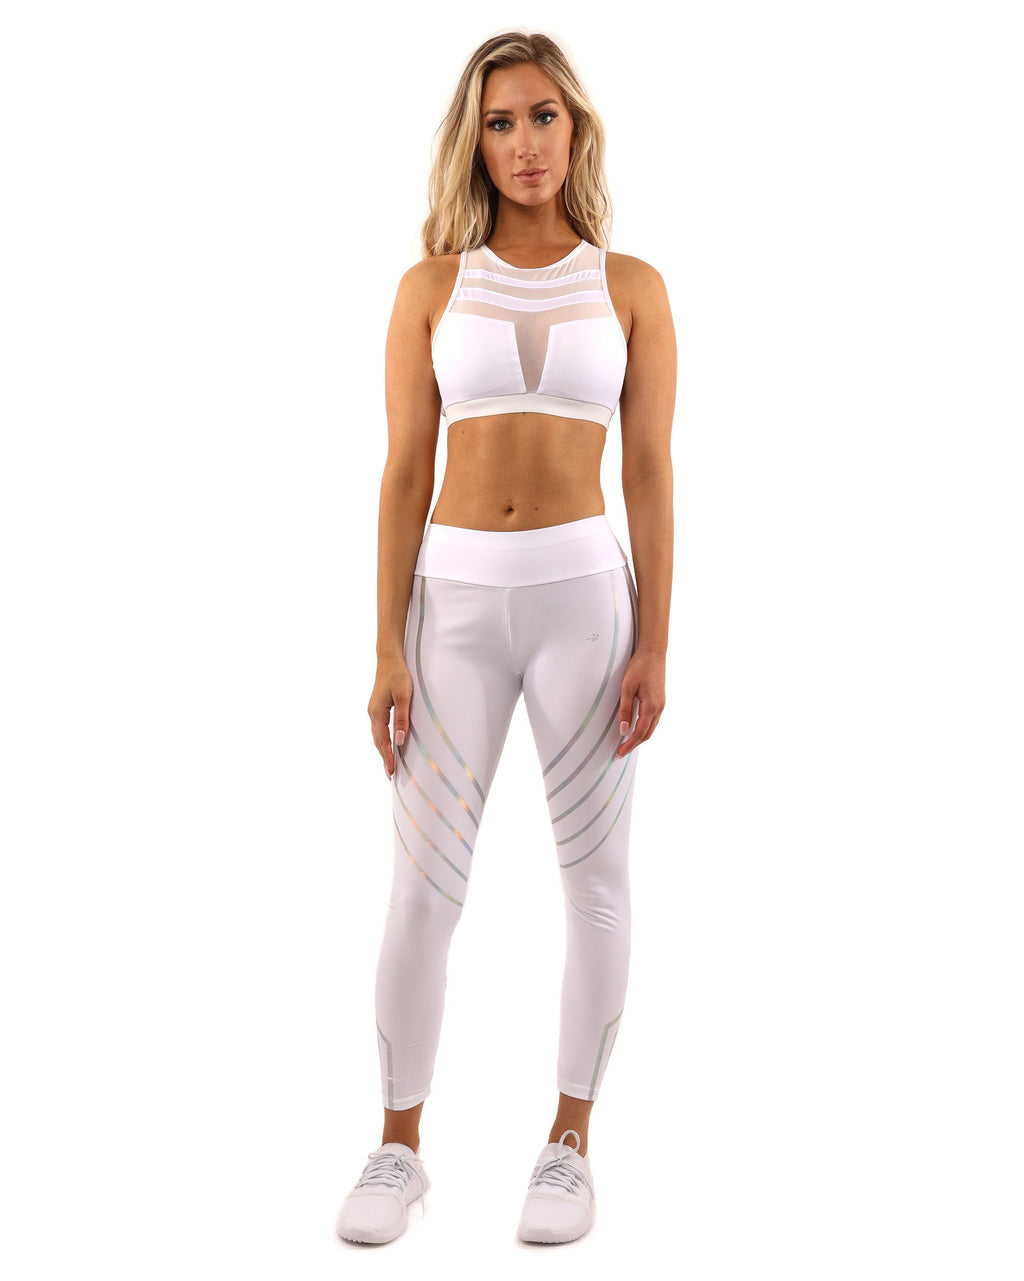 Laguna Set - Leggings & Sports Bra - White - KATANA FASHION BOUTIQUE